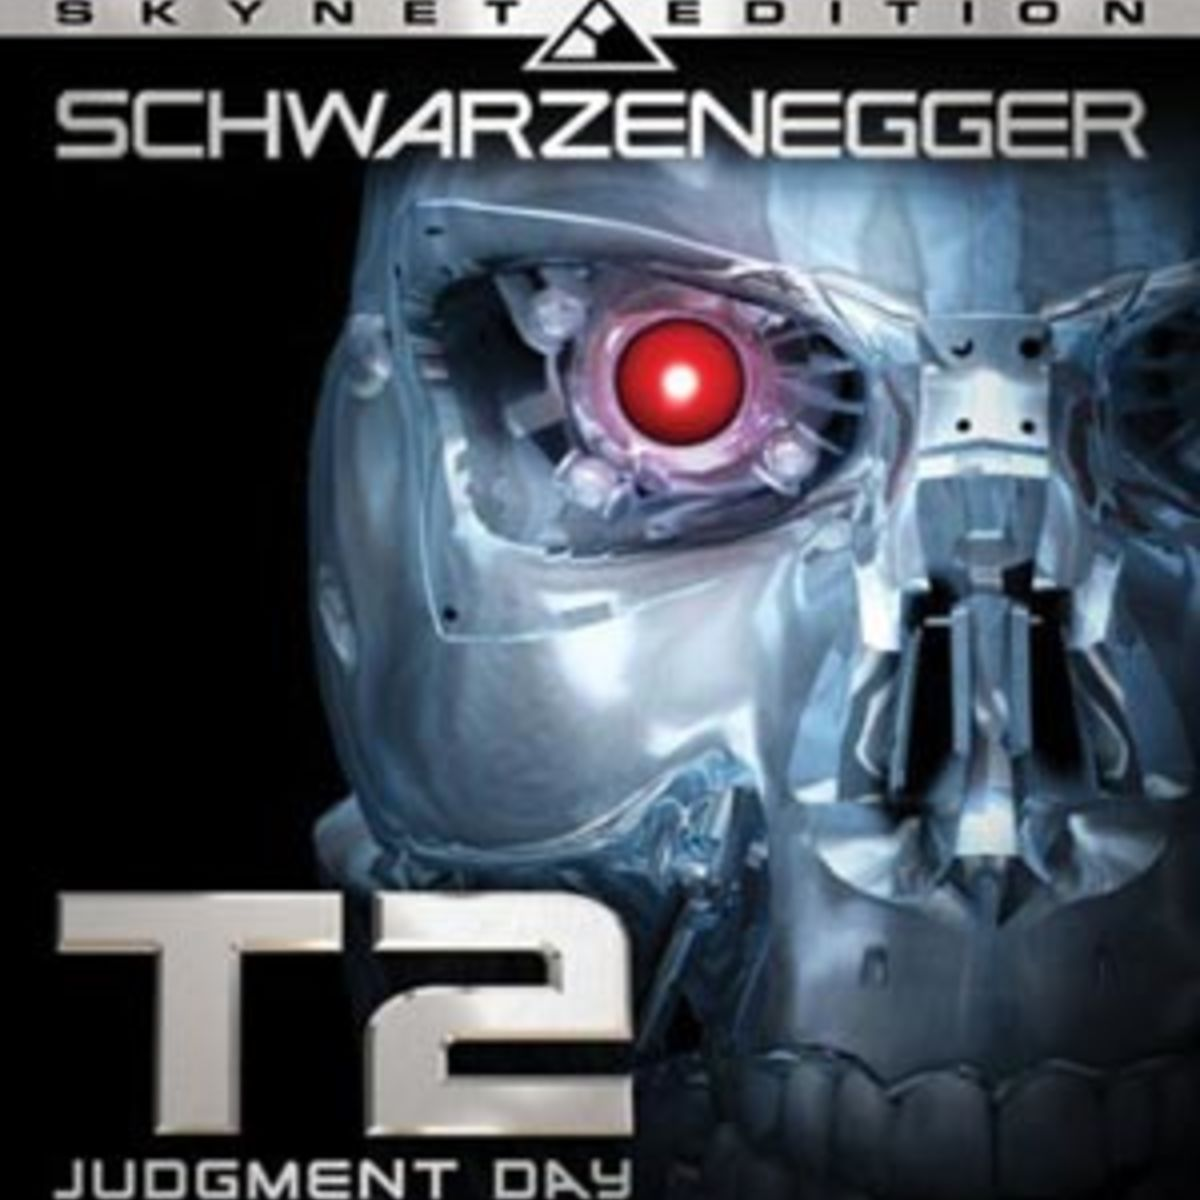 T2JudgmentDayReview1.jpg